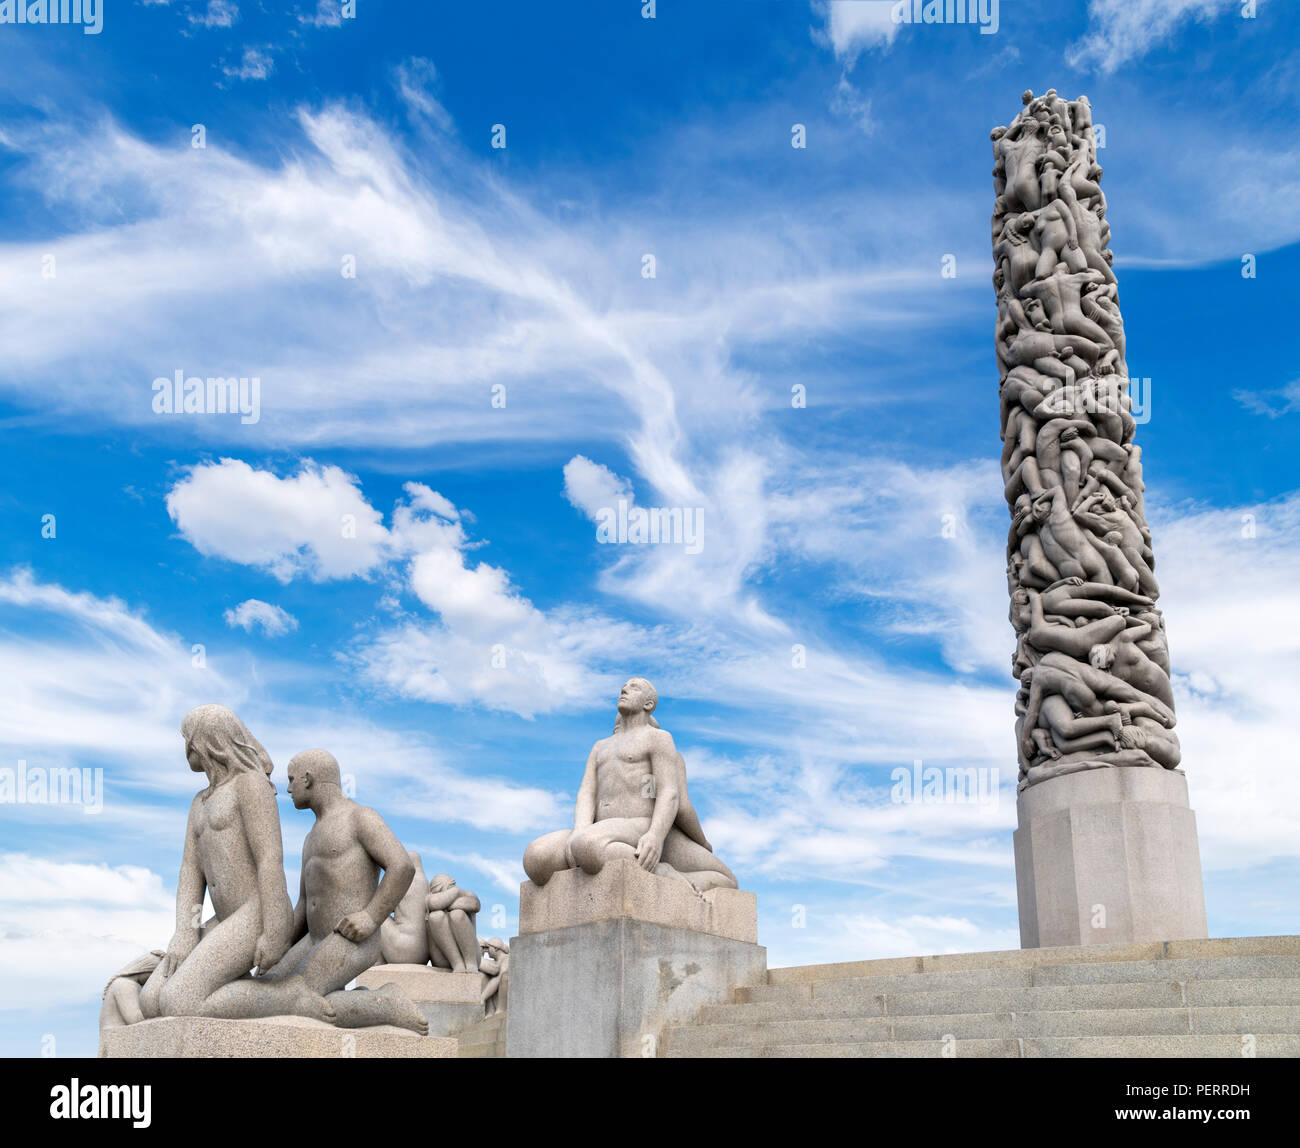 Vigeland Sculpture Park, Oslo. The Monolith and other sculptures by Norwegian sculptor, Gustav Vigeland, Vigelandsparken, Frognerpark, Oslo, Norway - Stock Image